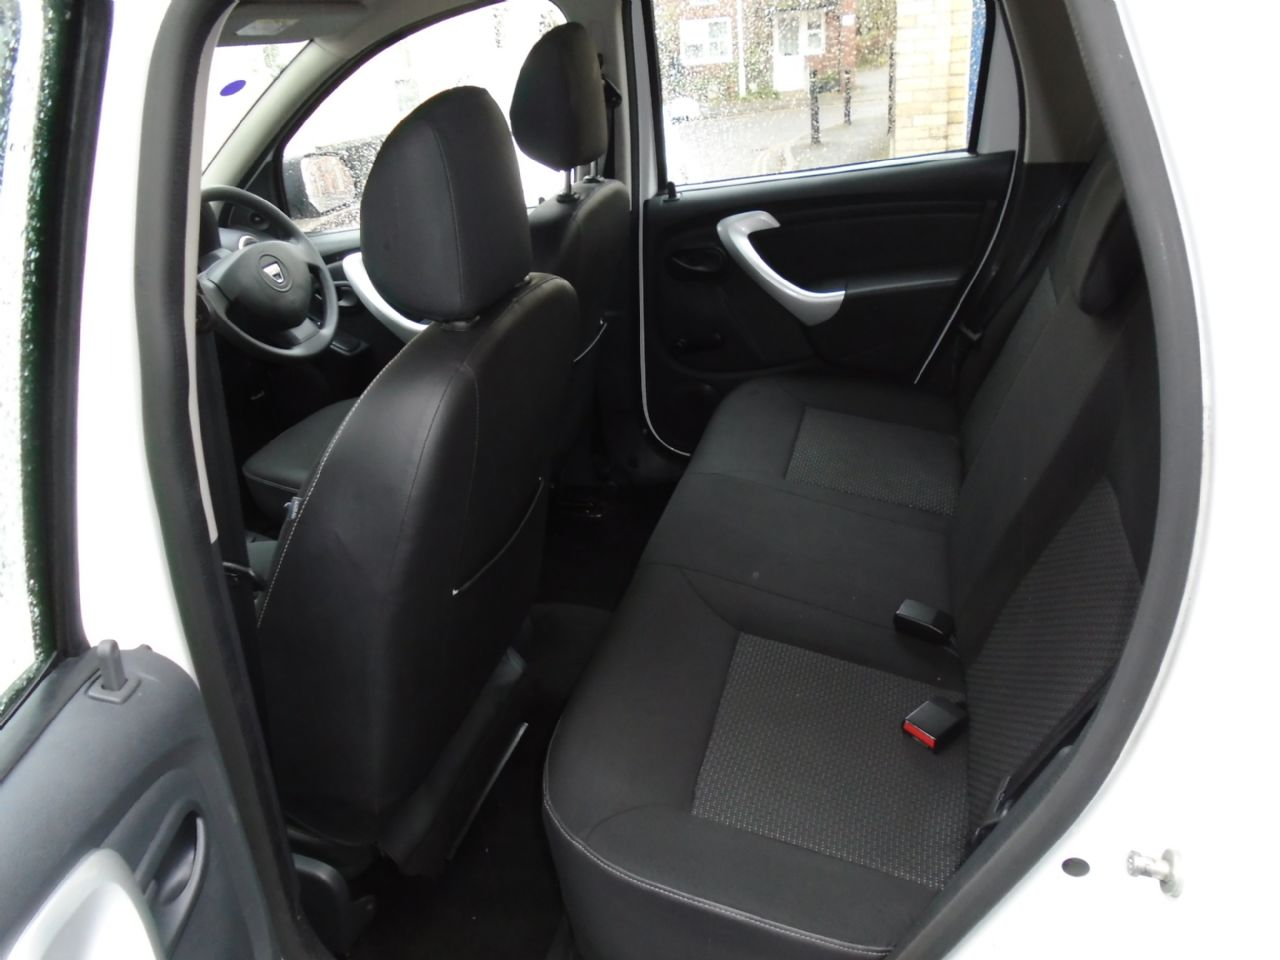 DACIA DUSTER Ambiance dCi 110 4x2 - Picture 6